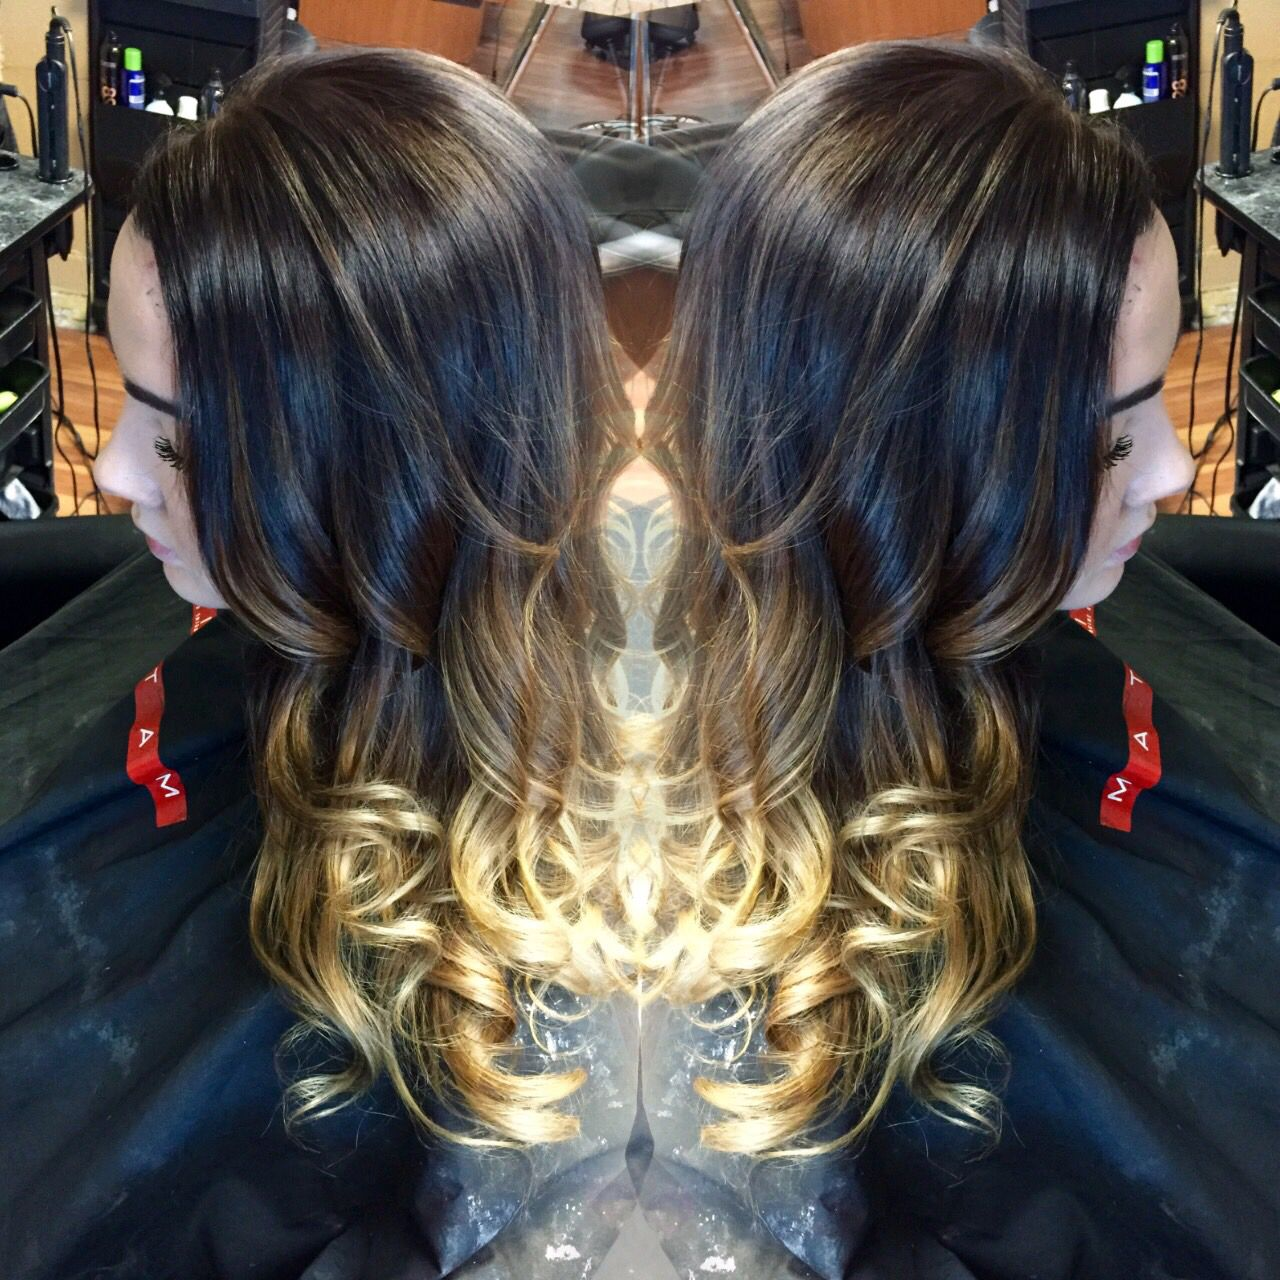 Brown to blonde balayage ombre.